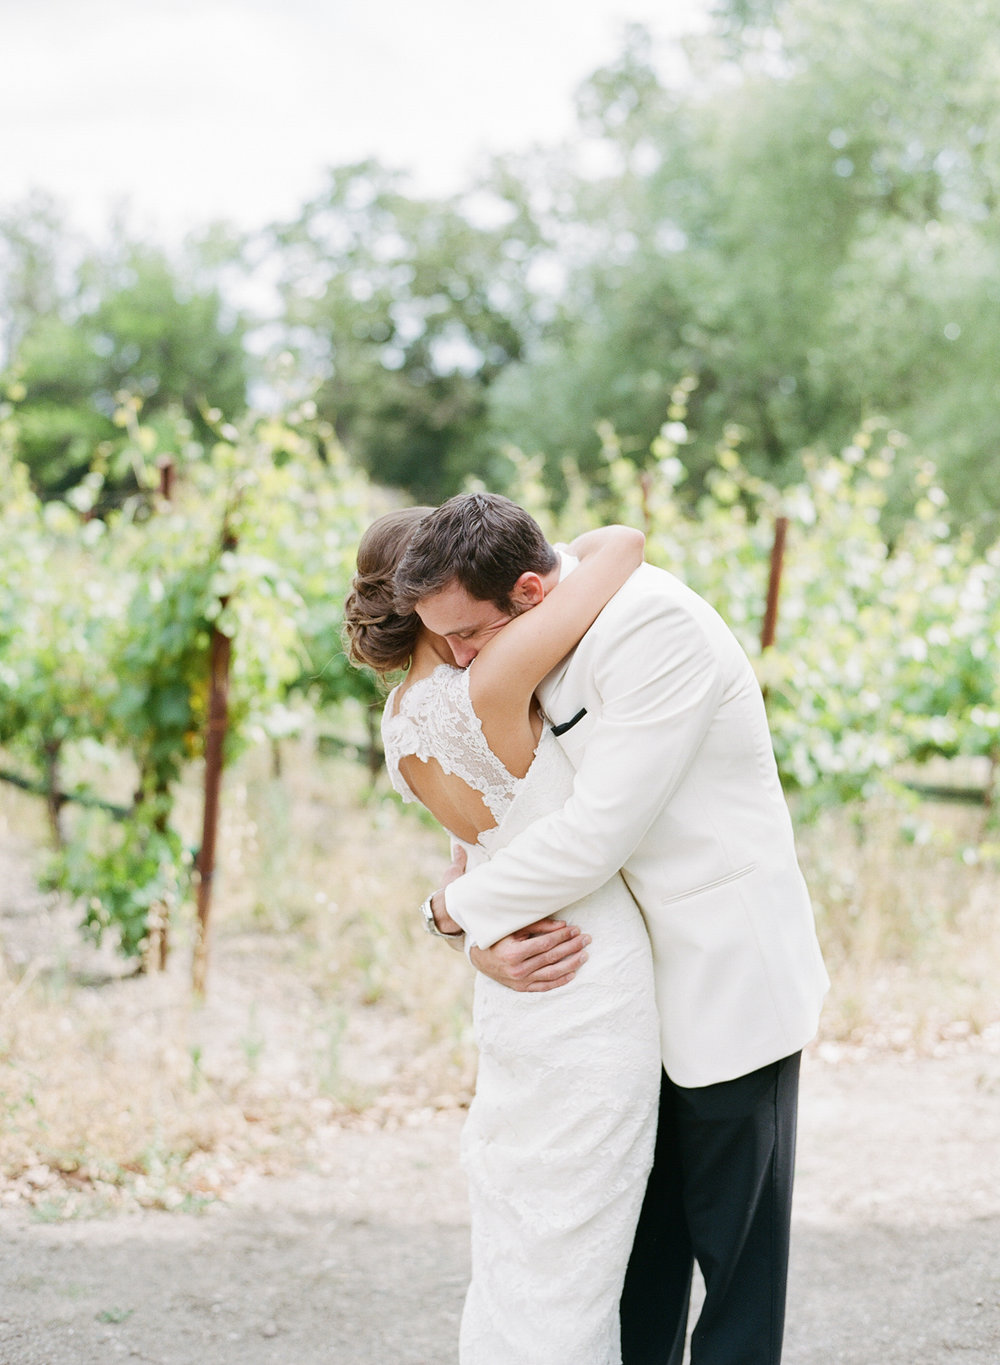 The bride and groom share a tender moment during the first look; Sylvie Gil Photography